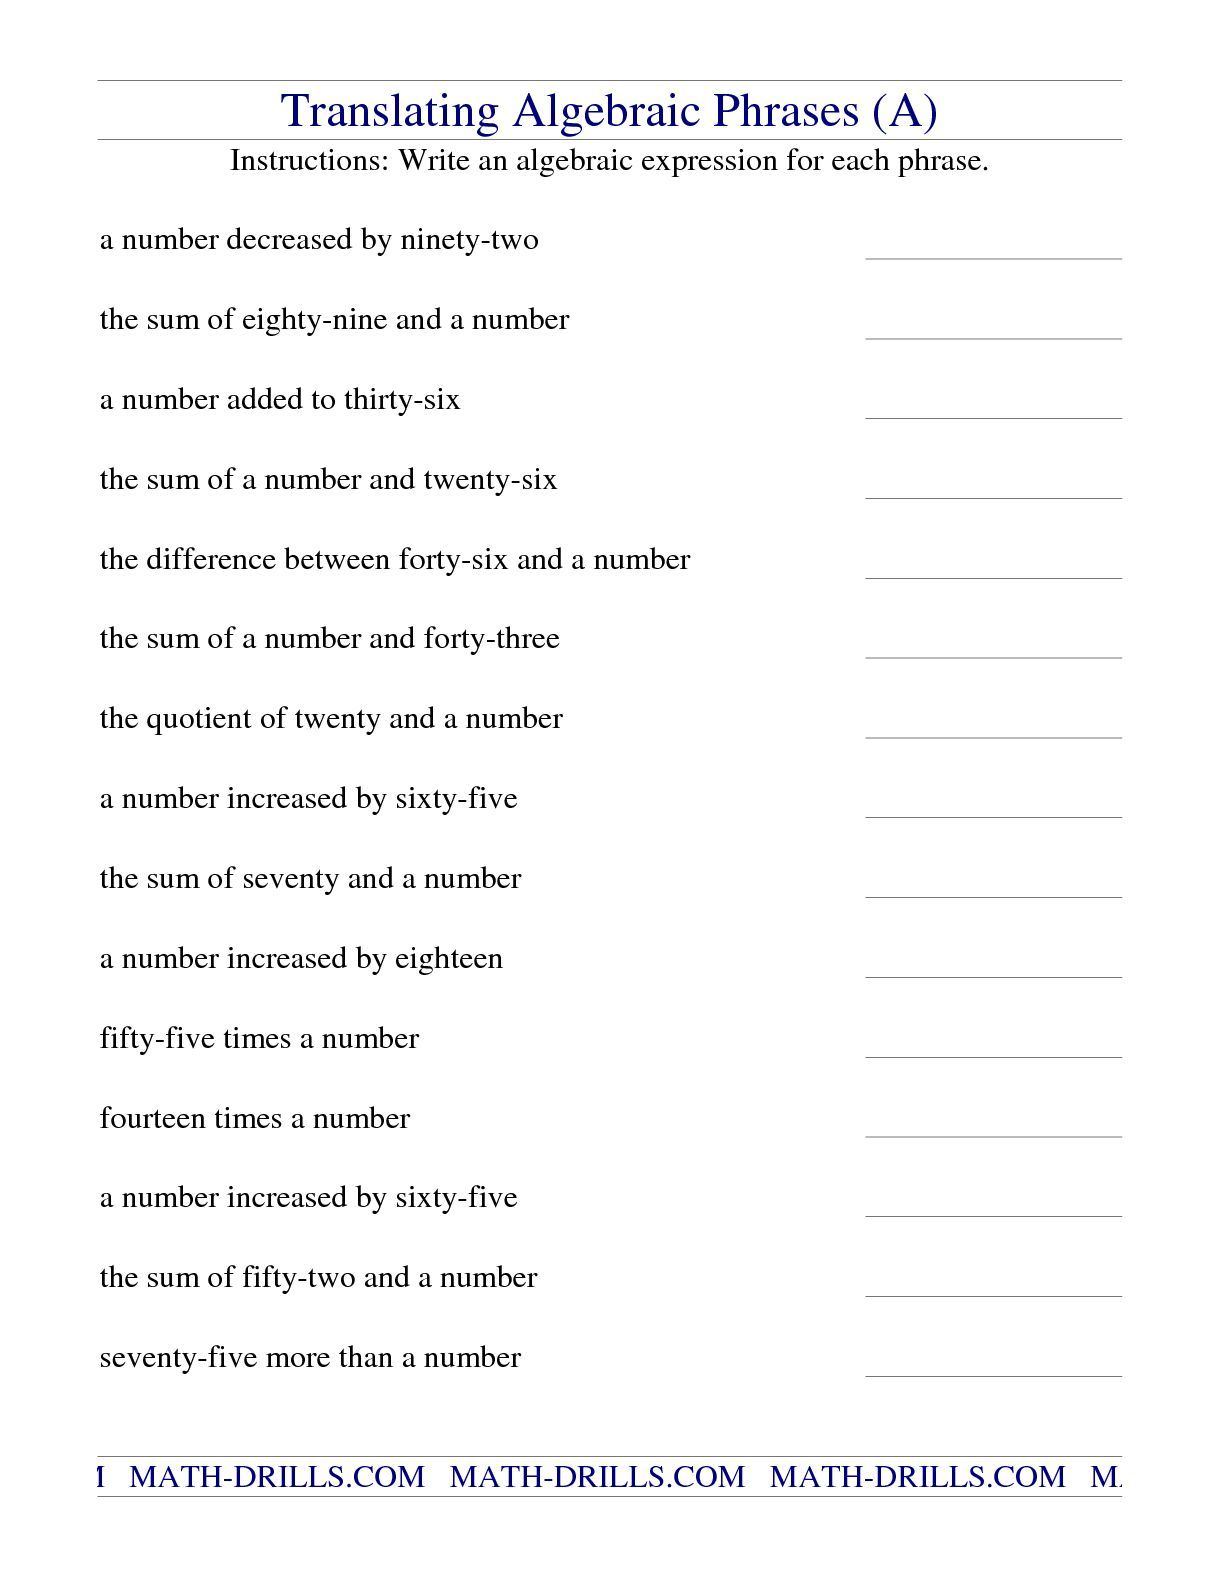 The Translating Algebraic Phrases A Math Worksheet From The Algebra Wor Algebraic Expressions Writing Algebraic Expressions Translating Algebraic Expressions